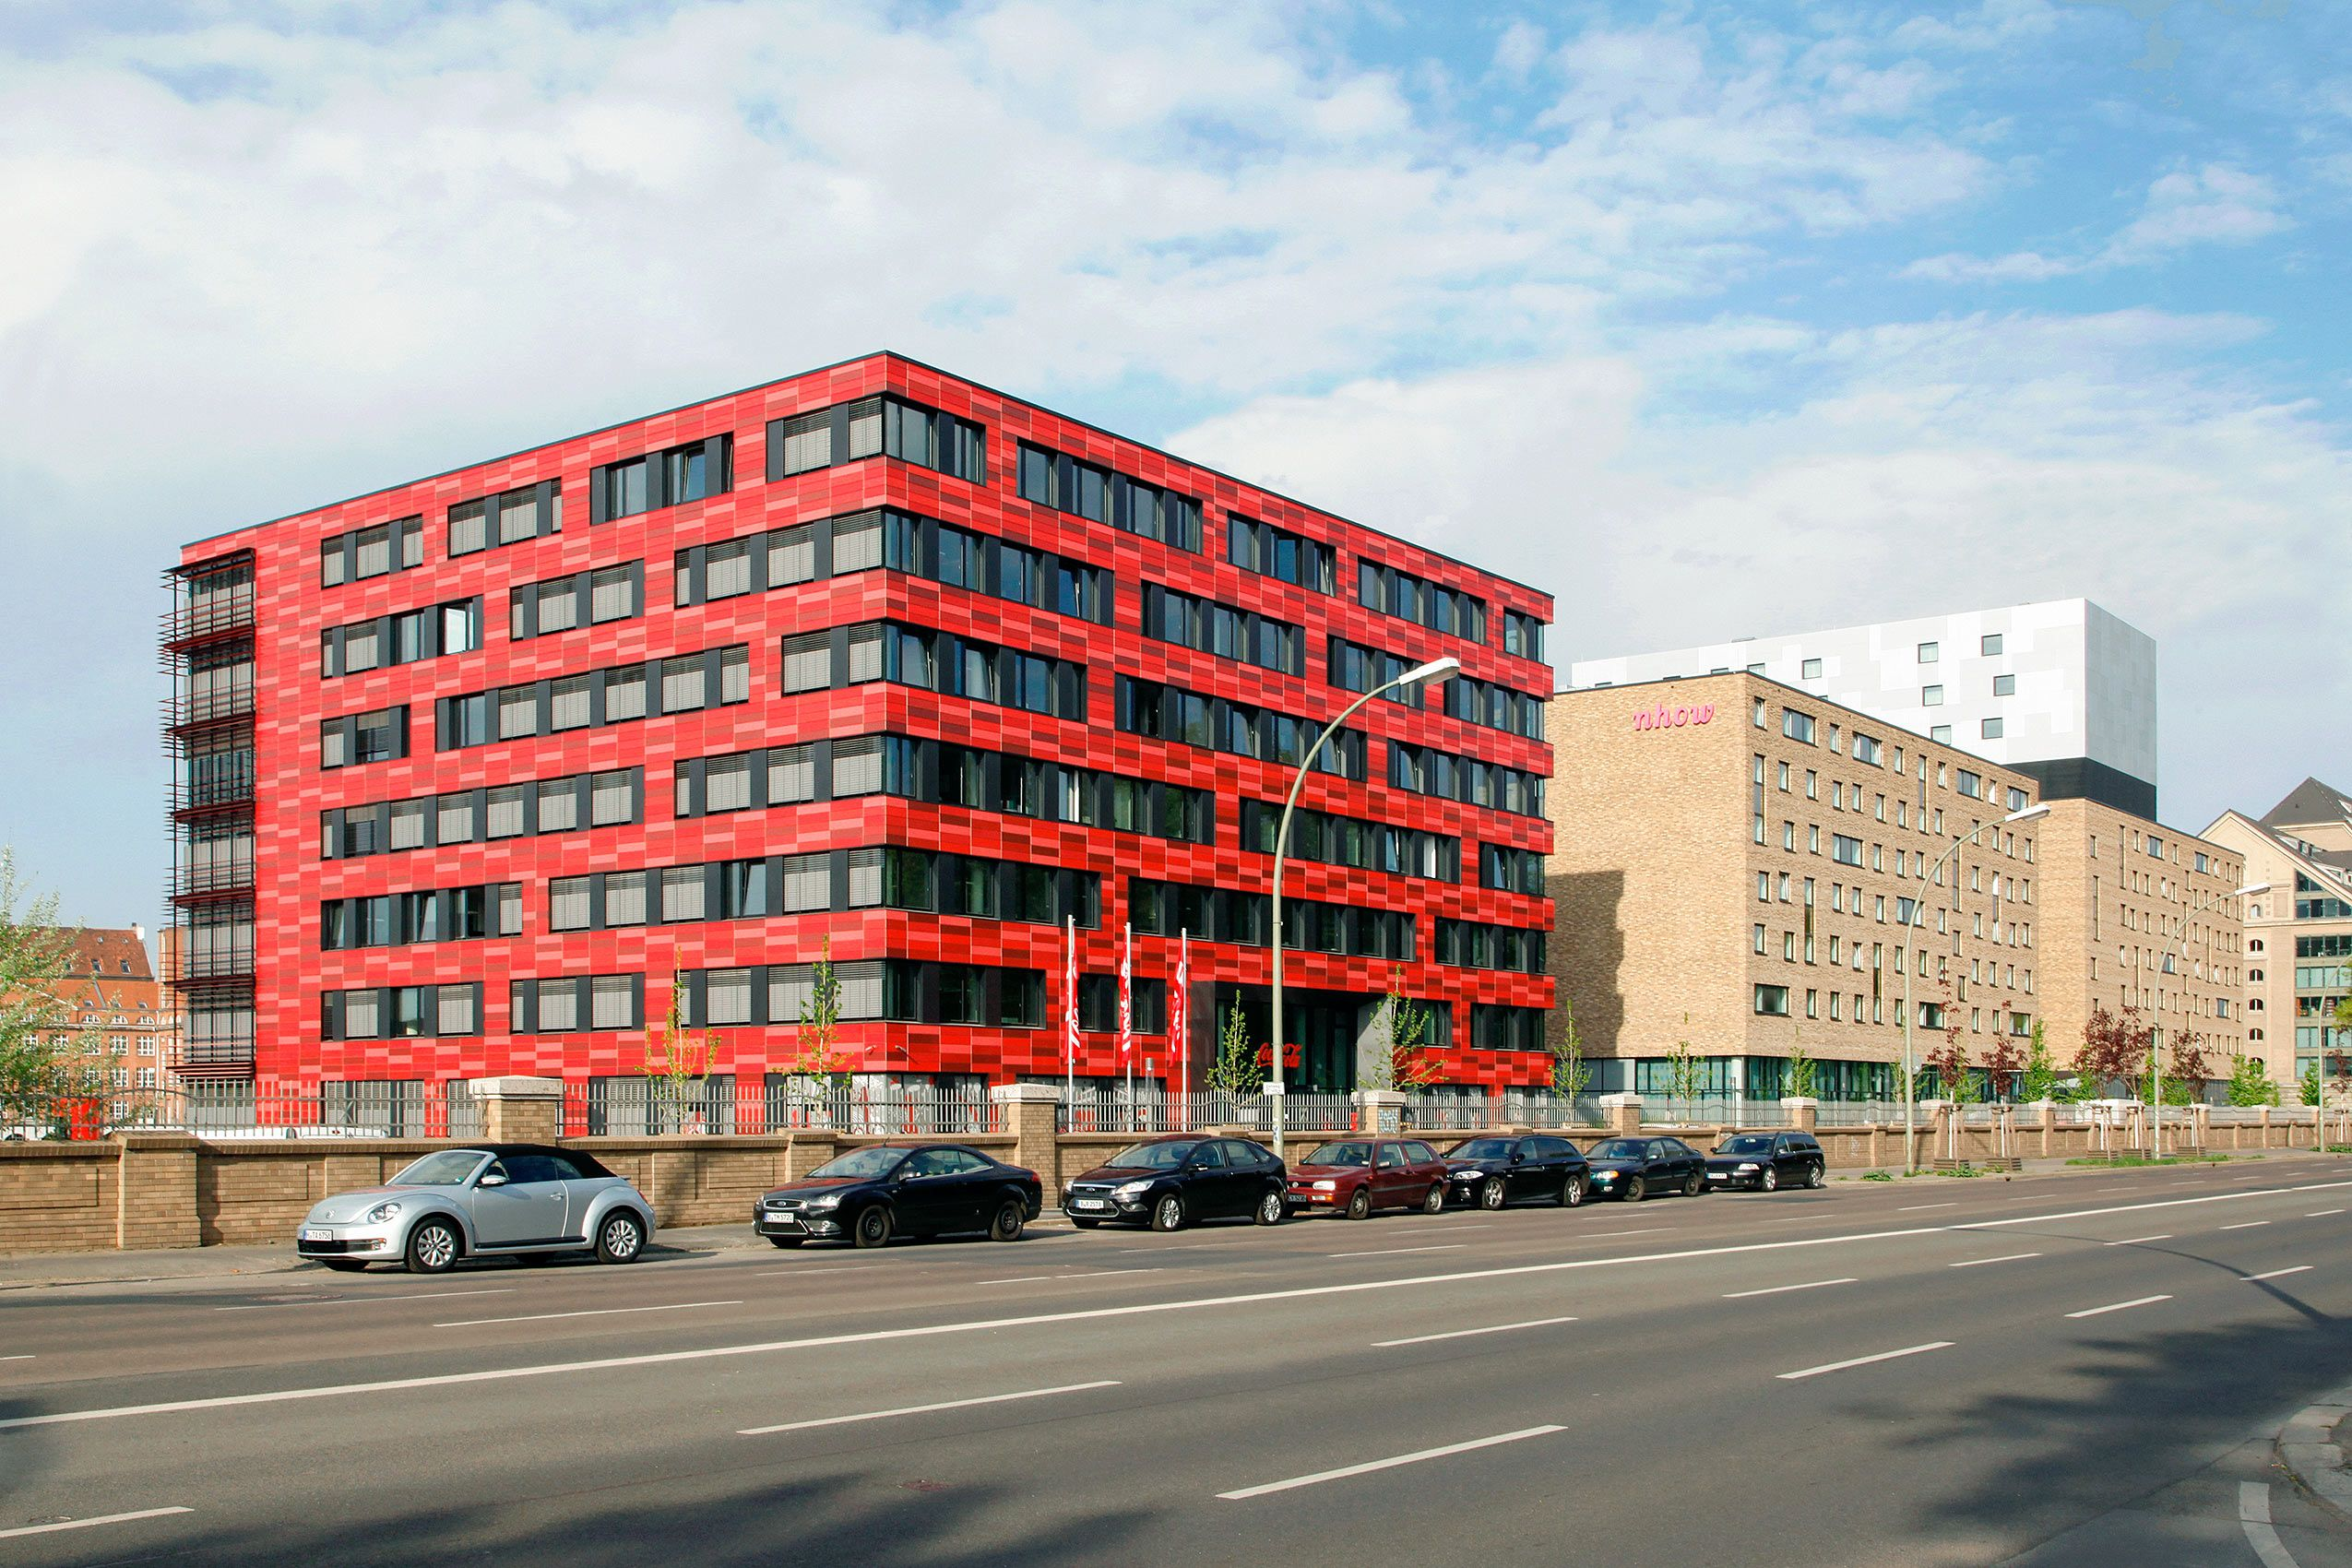 Coca-Cola Headquarter, Berlin 2013